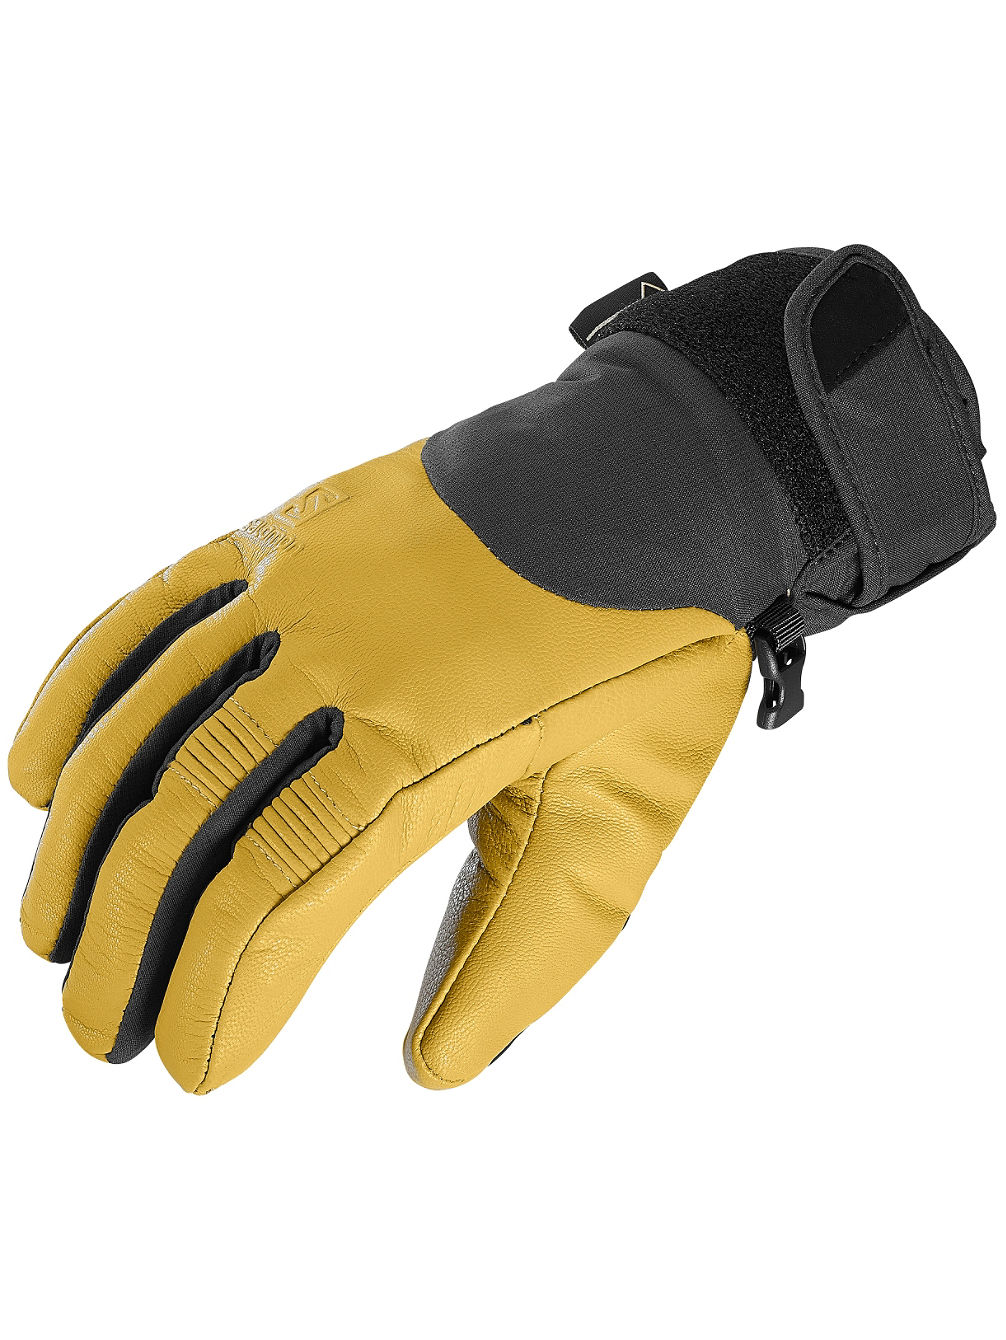 Qst Gtx Gloves